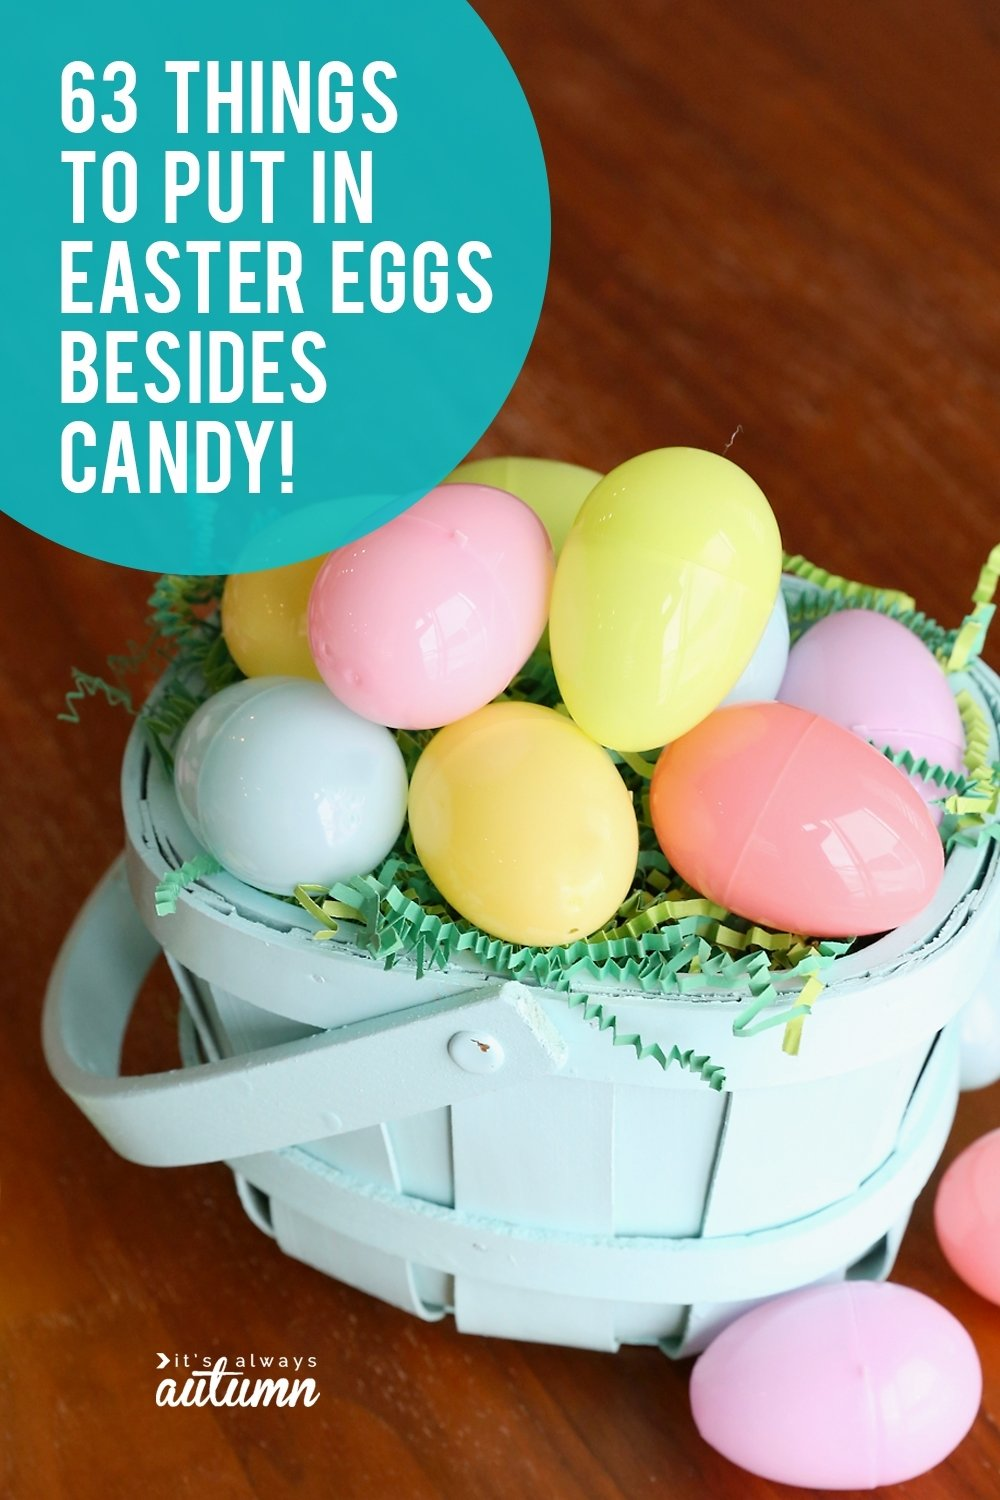 10 Ideal Ideas To Put In Easter Eggs 63 fantastic easter egg fillers things to put in easter eggs 1 2020